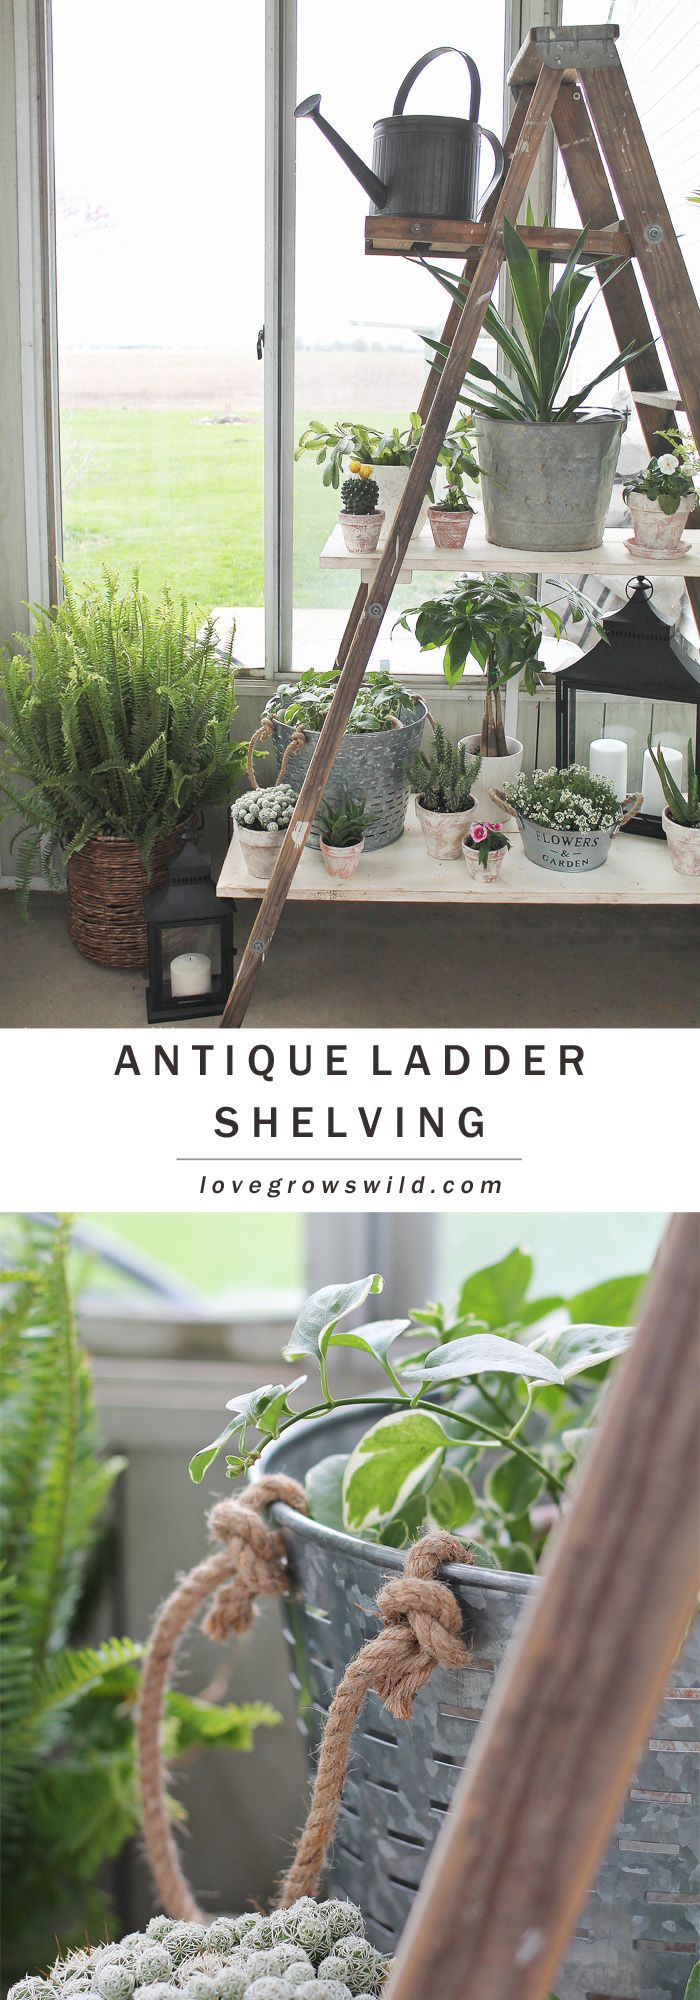 best 25 garden ladder ideas on pinterest herb planters antique ladder shelving